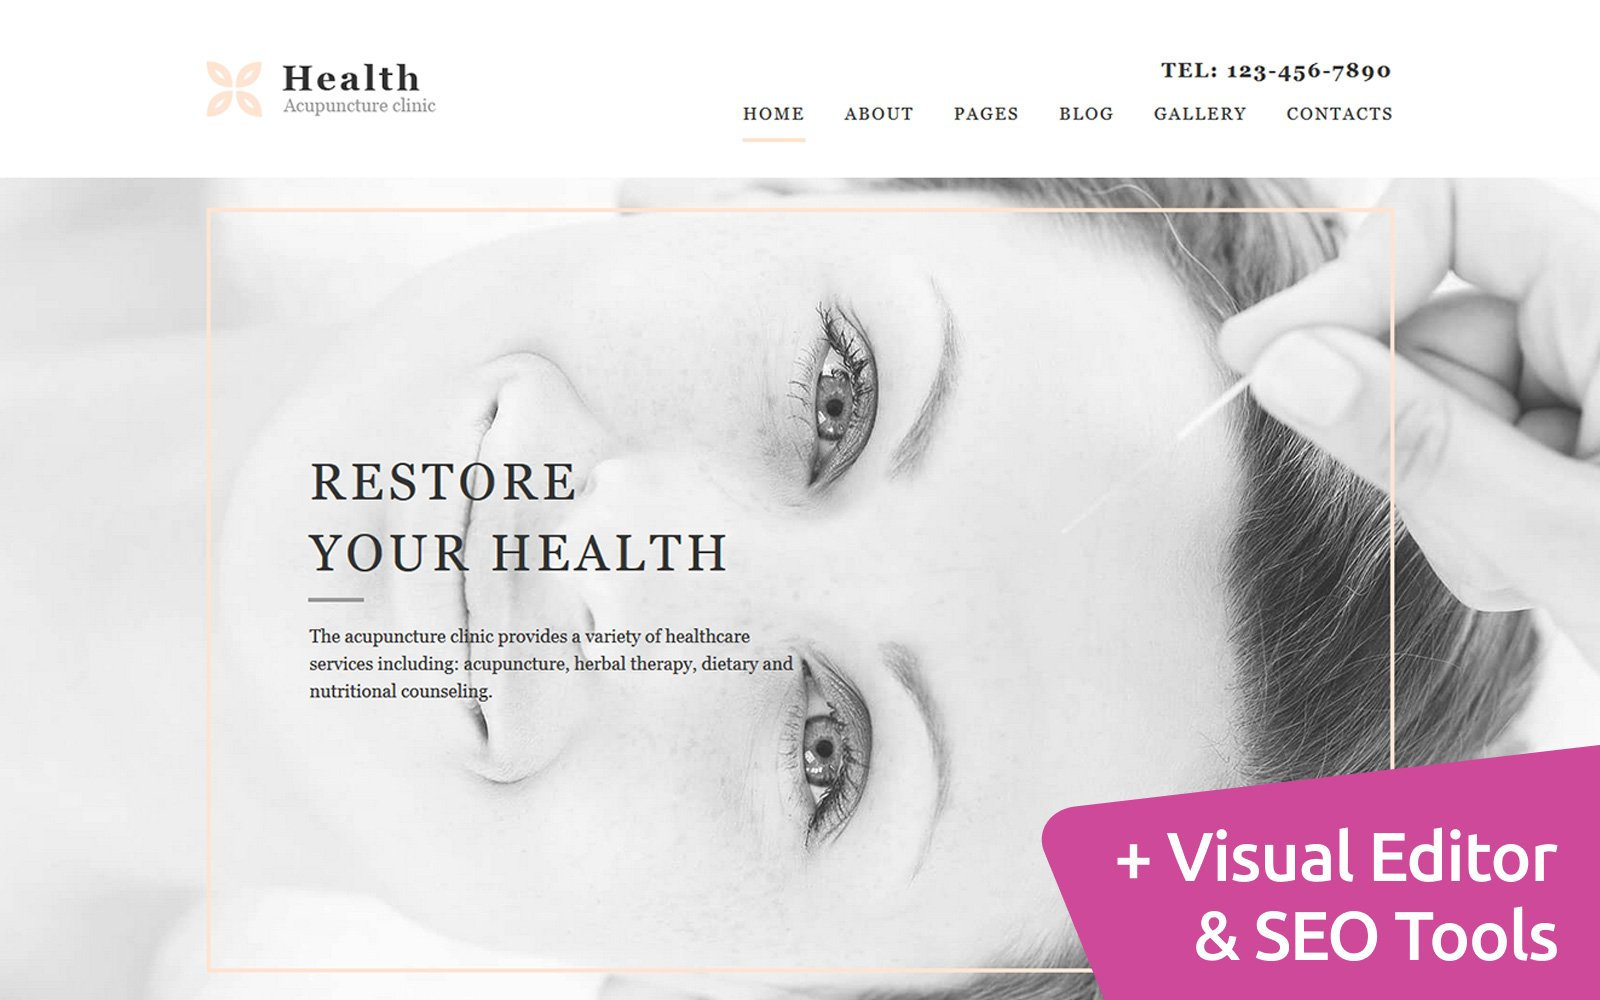 """Moto CMS 3 Template namens """"Health - Acupuncture Clinic"""" #117728"""